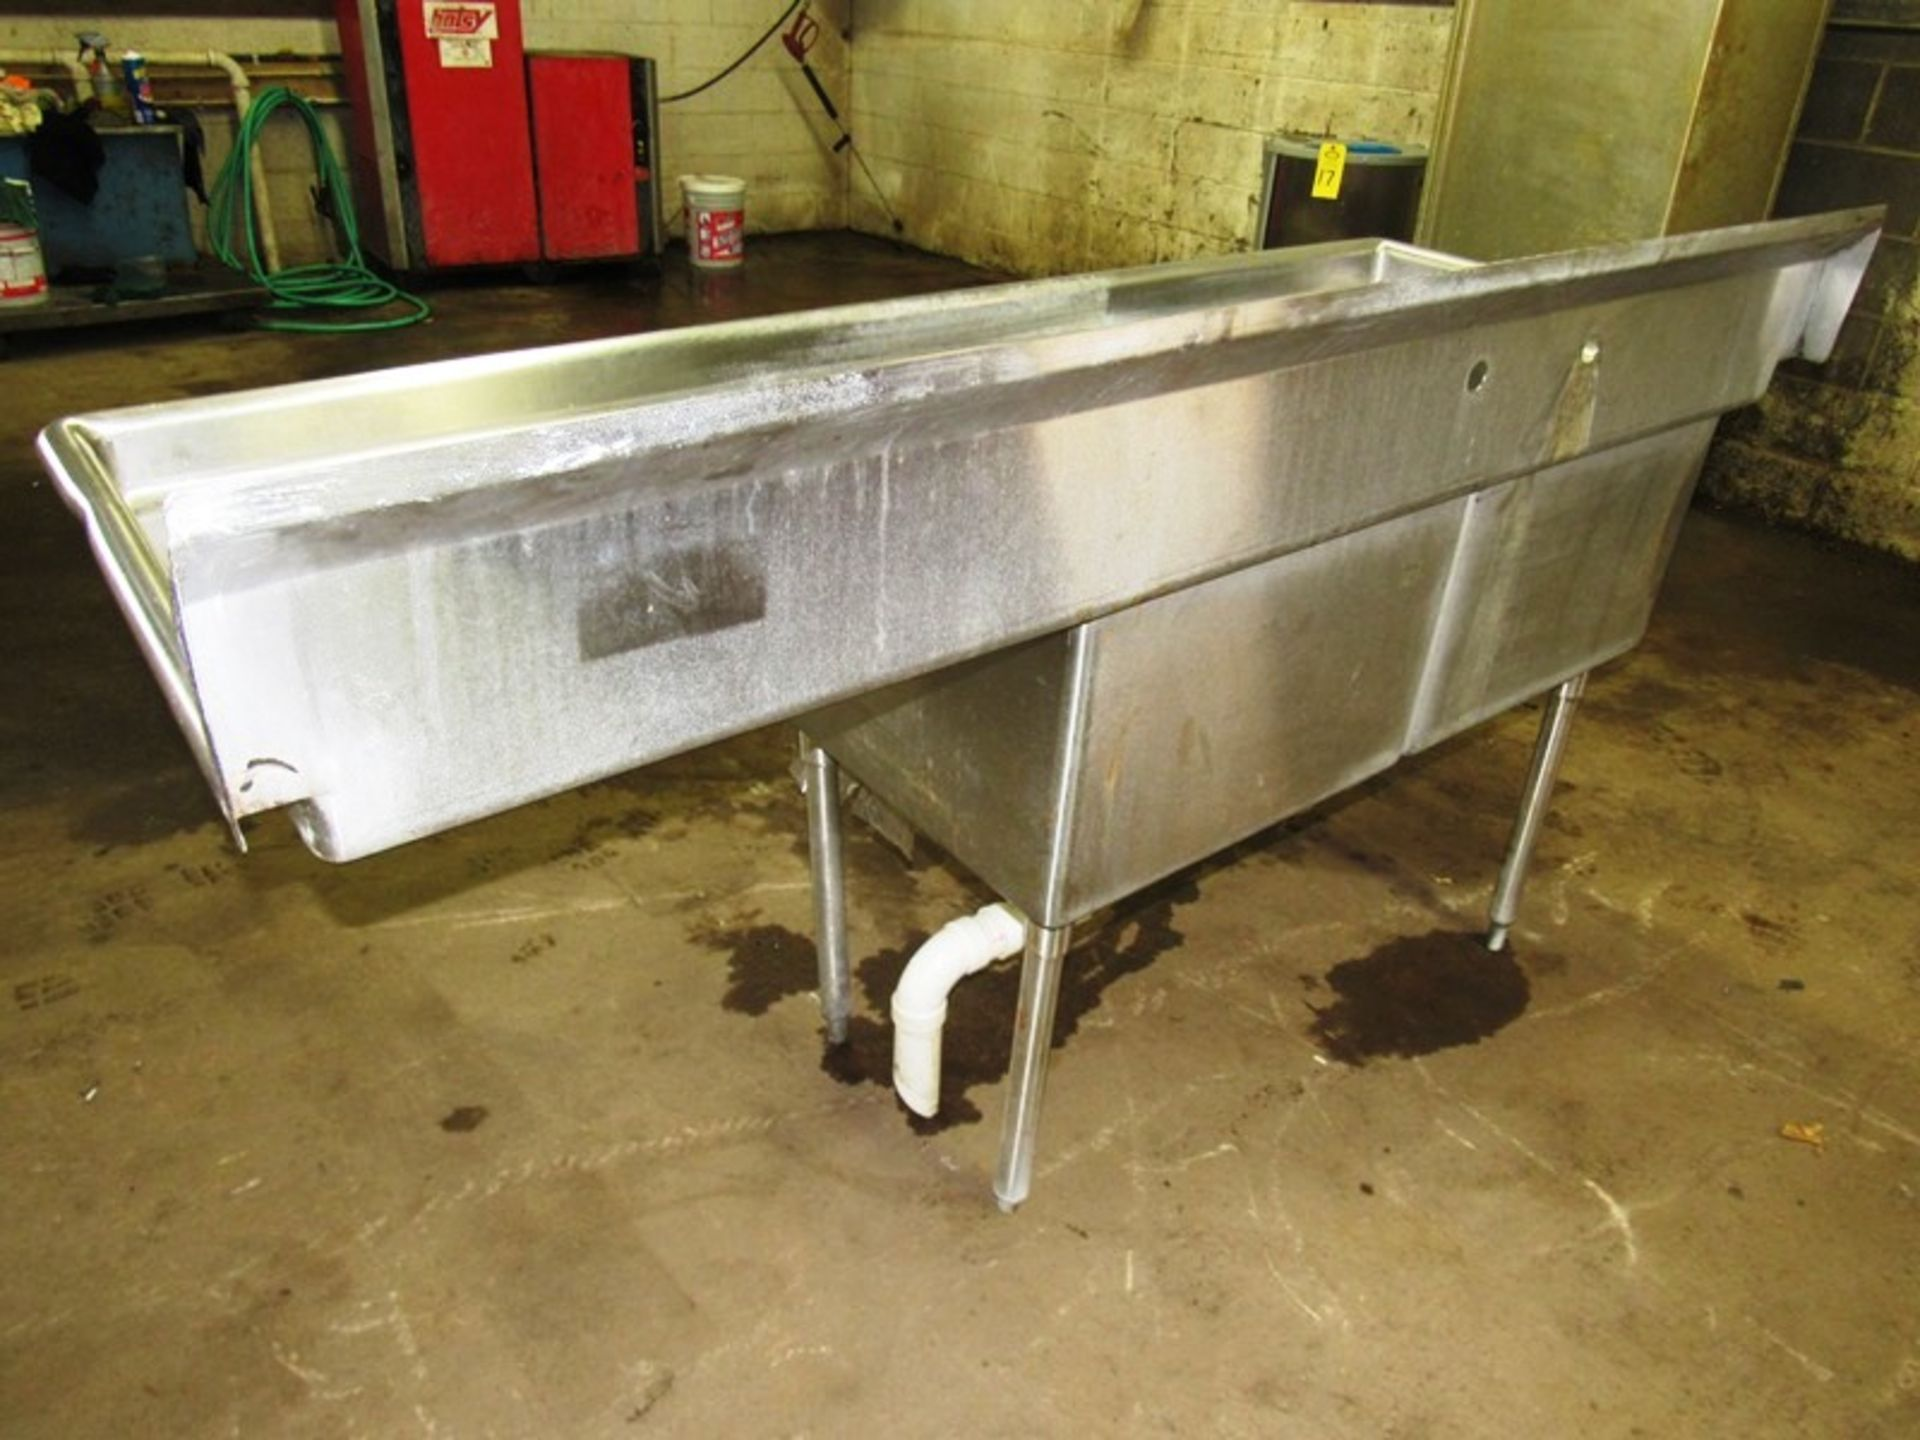 "Stainless Steel Sink, 28"" W X 6' L, (2) bays, 13"" deep, 24"" sideboard, space for faucet with sprayer - Image 4 of 4"